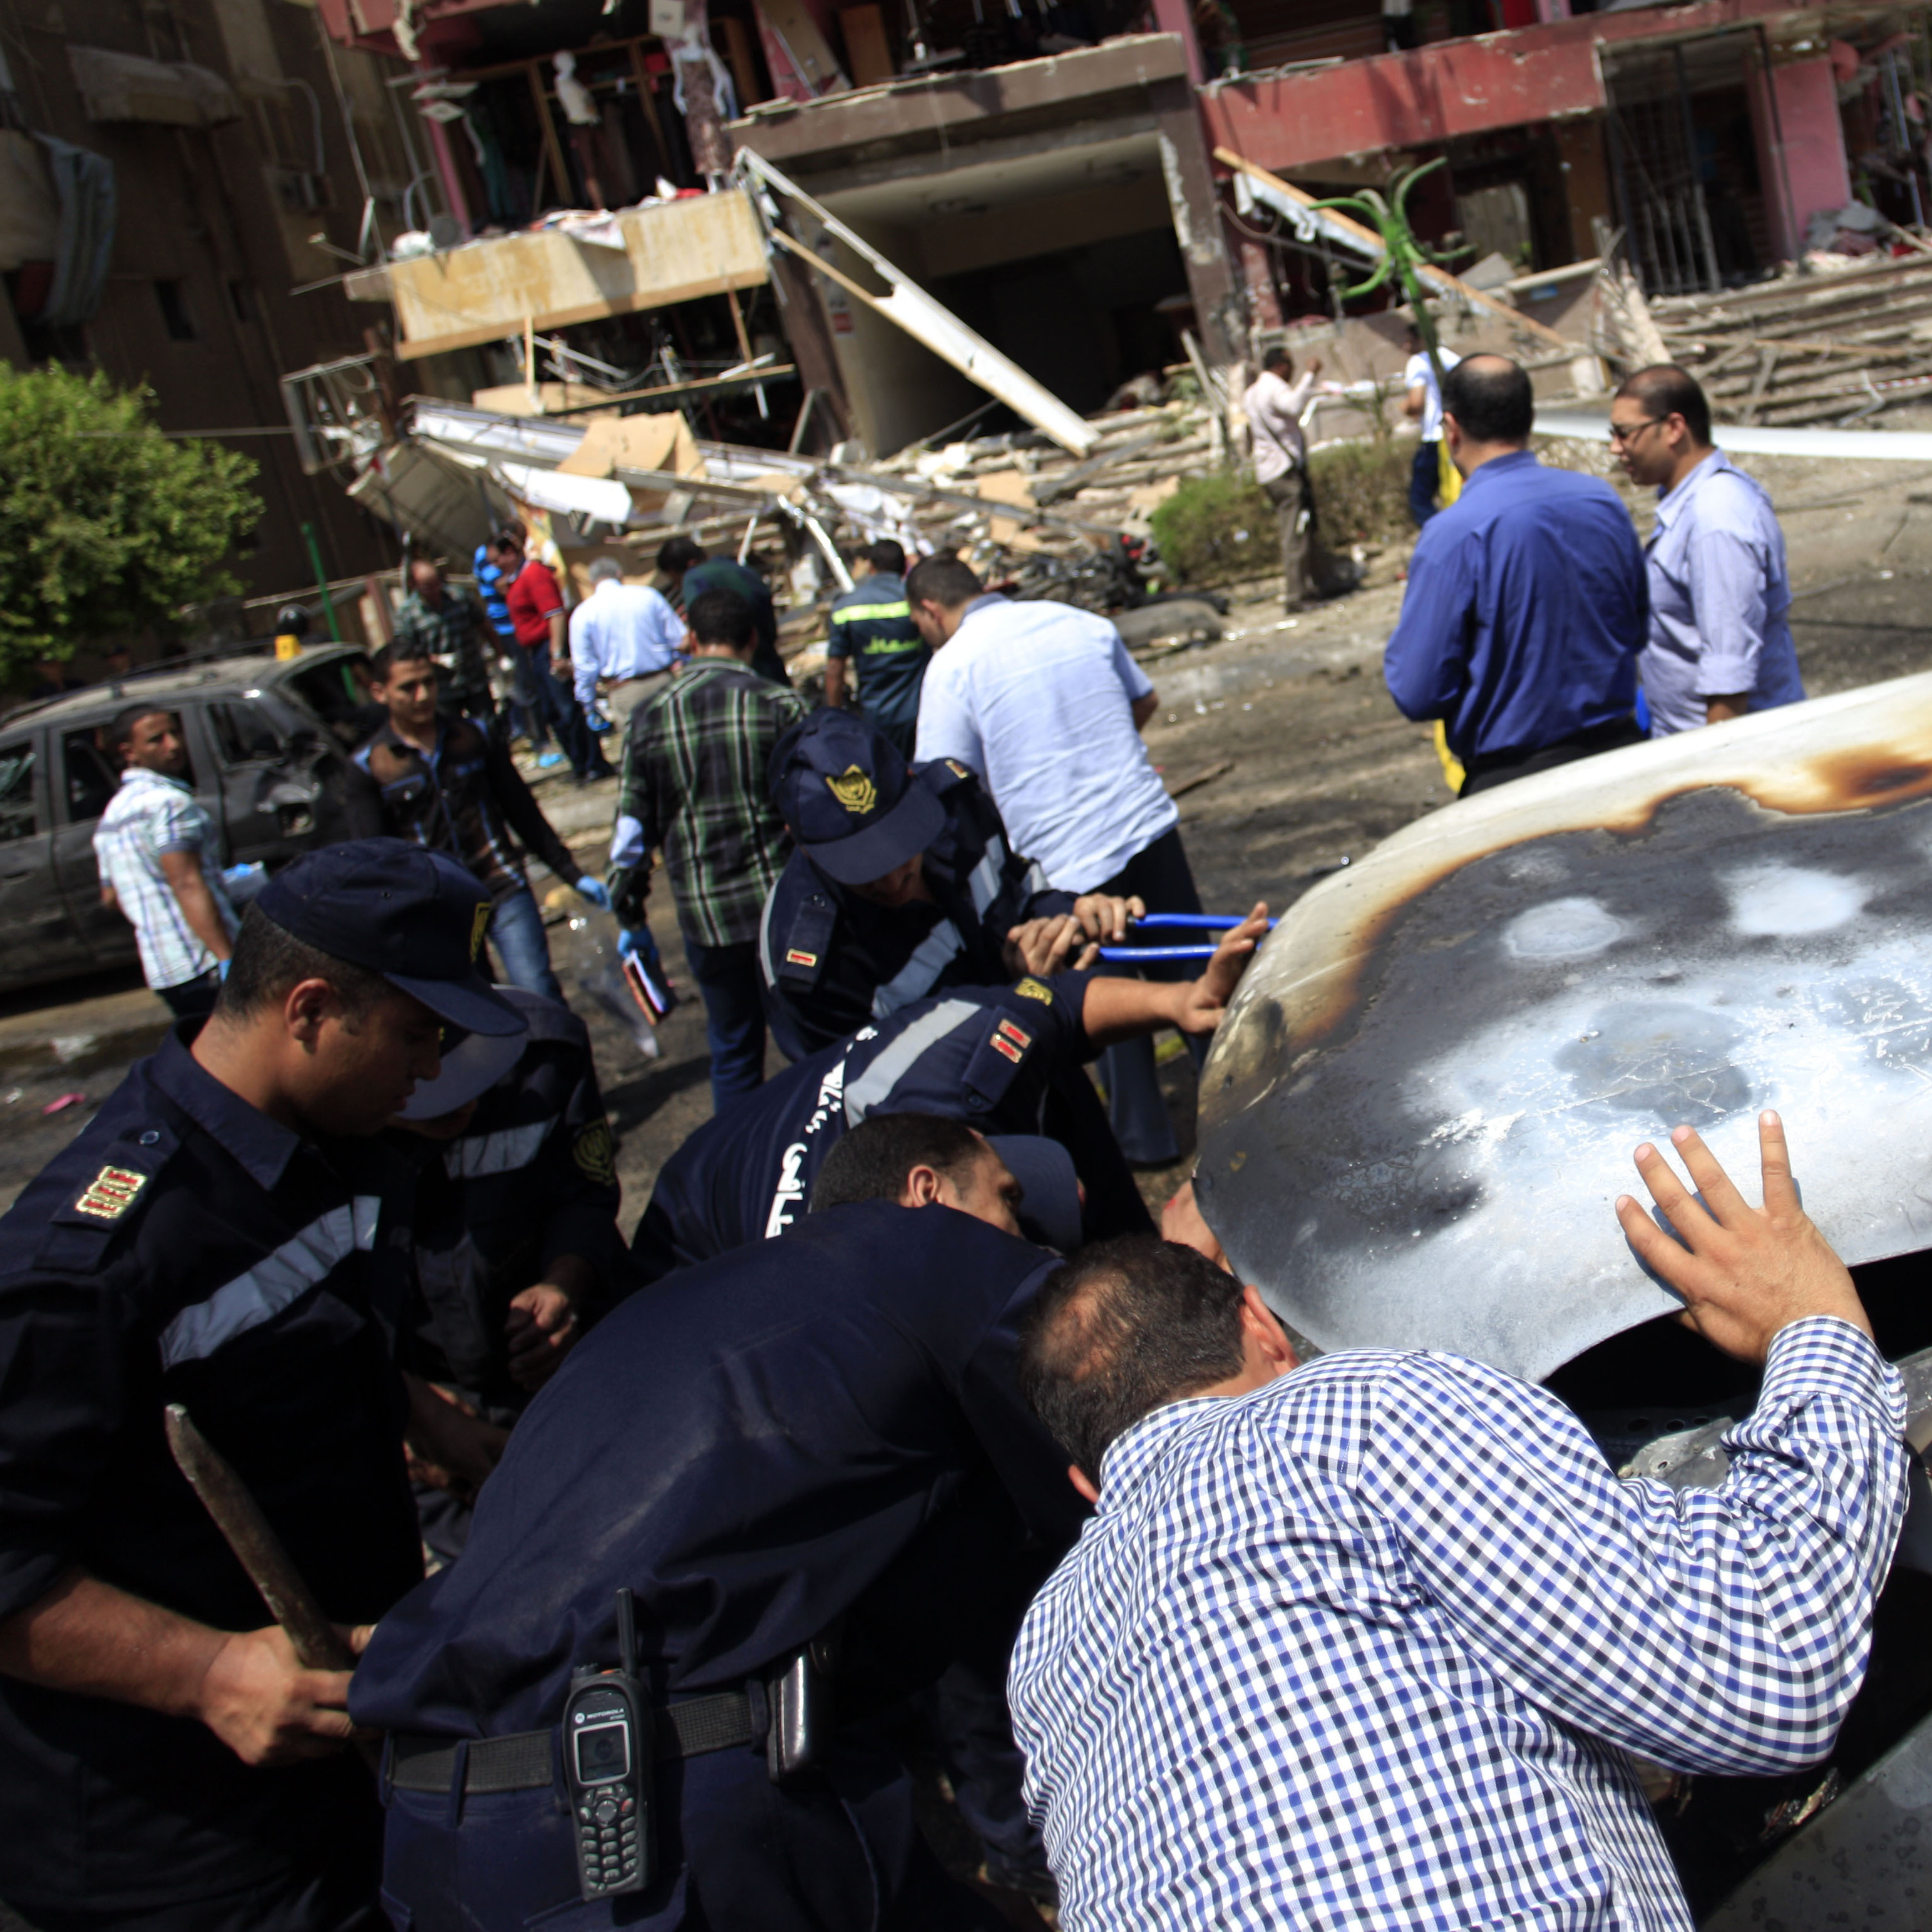 Security forces check a car damaged by a bomb in an attack on the convoy of Egypt's Interior Minister Mohammed Ibrahim, in Cairo, on Sept. 5. The militant group Ansar Beit al-Maqdis claimed responsibility.